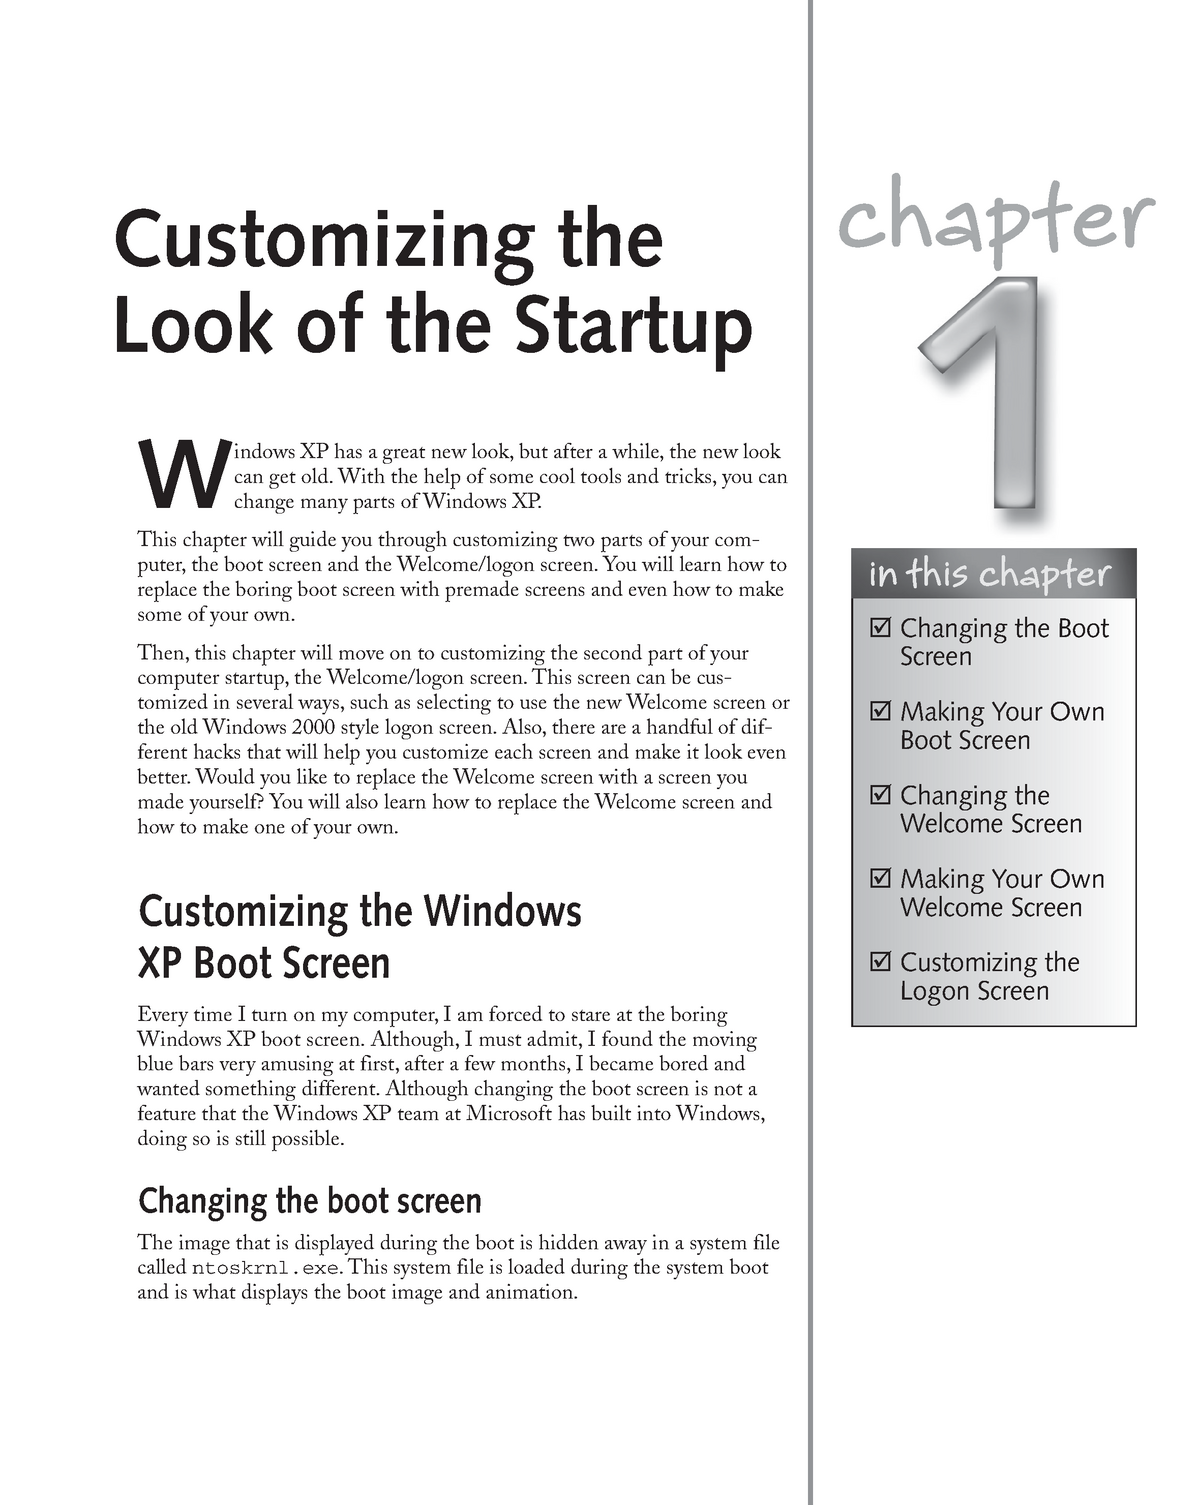 Chapter 01 Customizing the Look of the Startup - MIT 8202